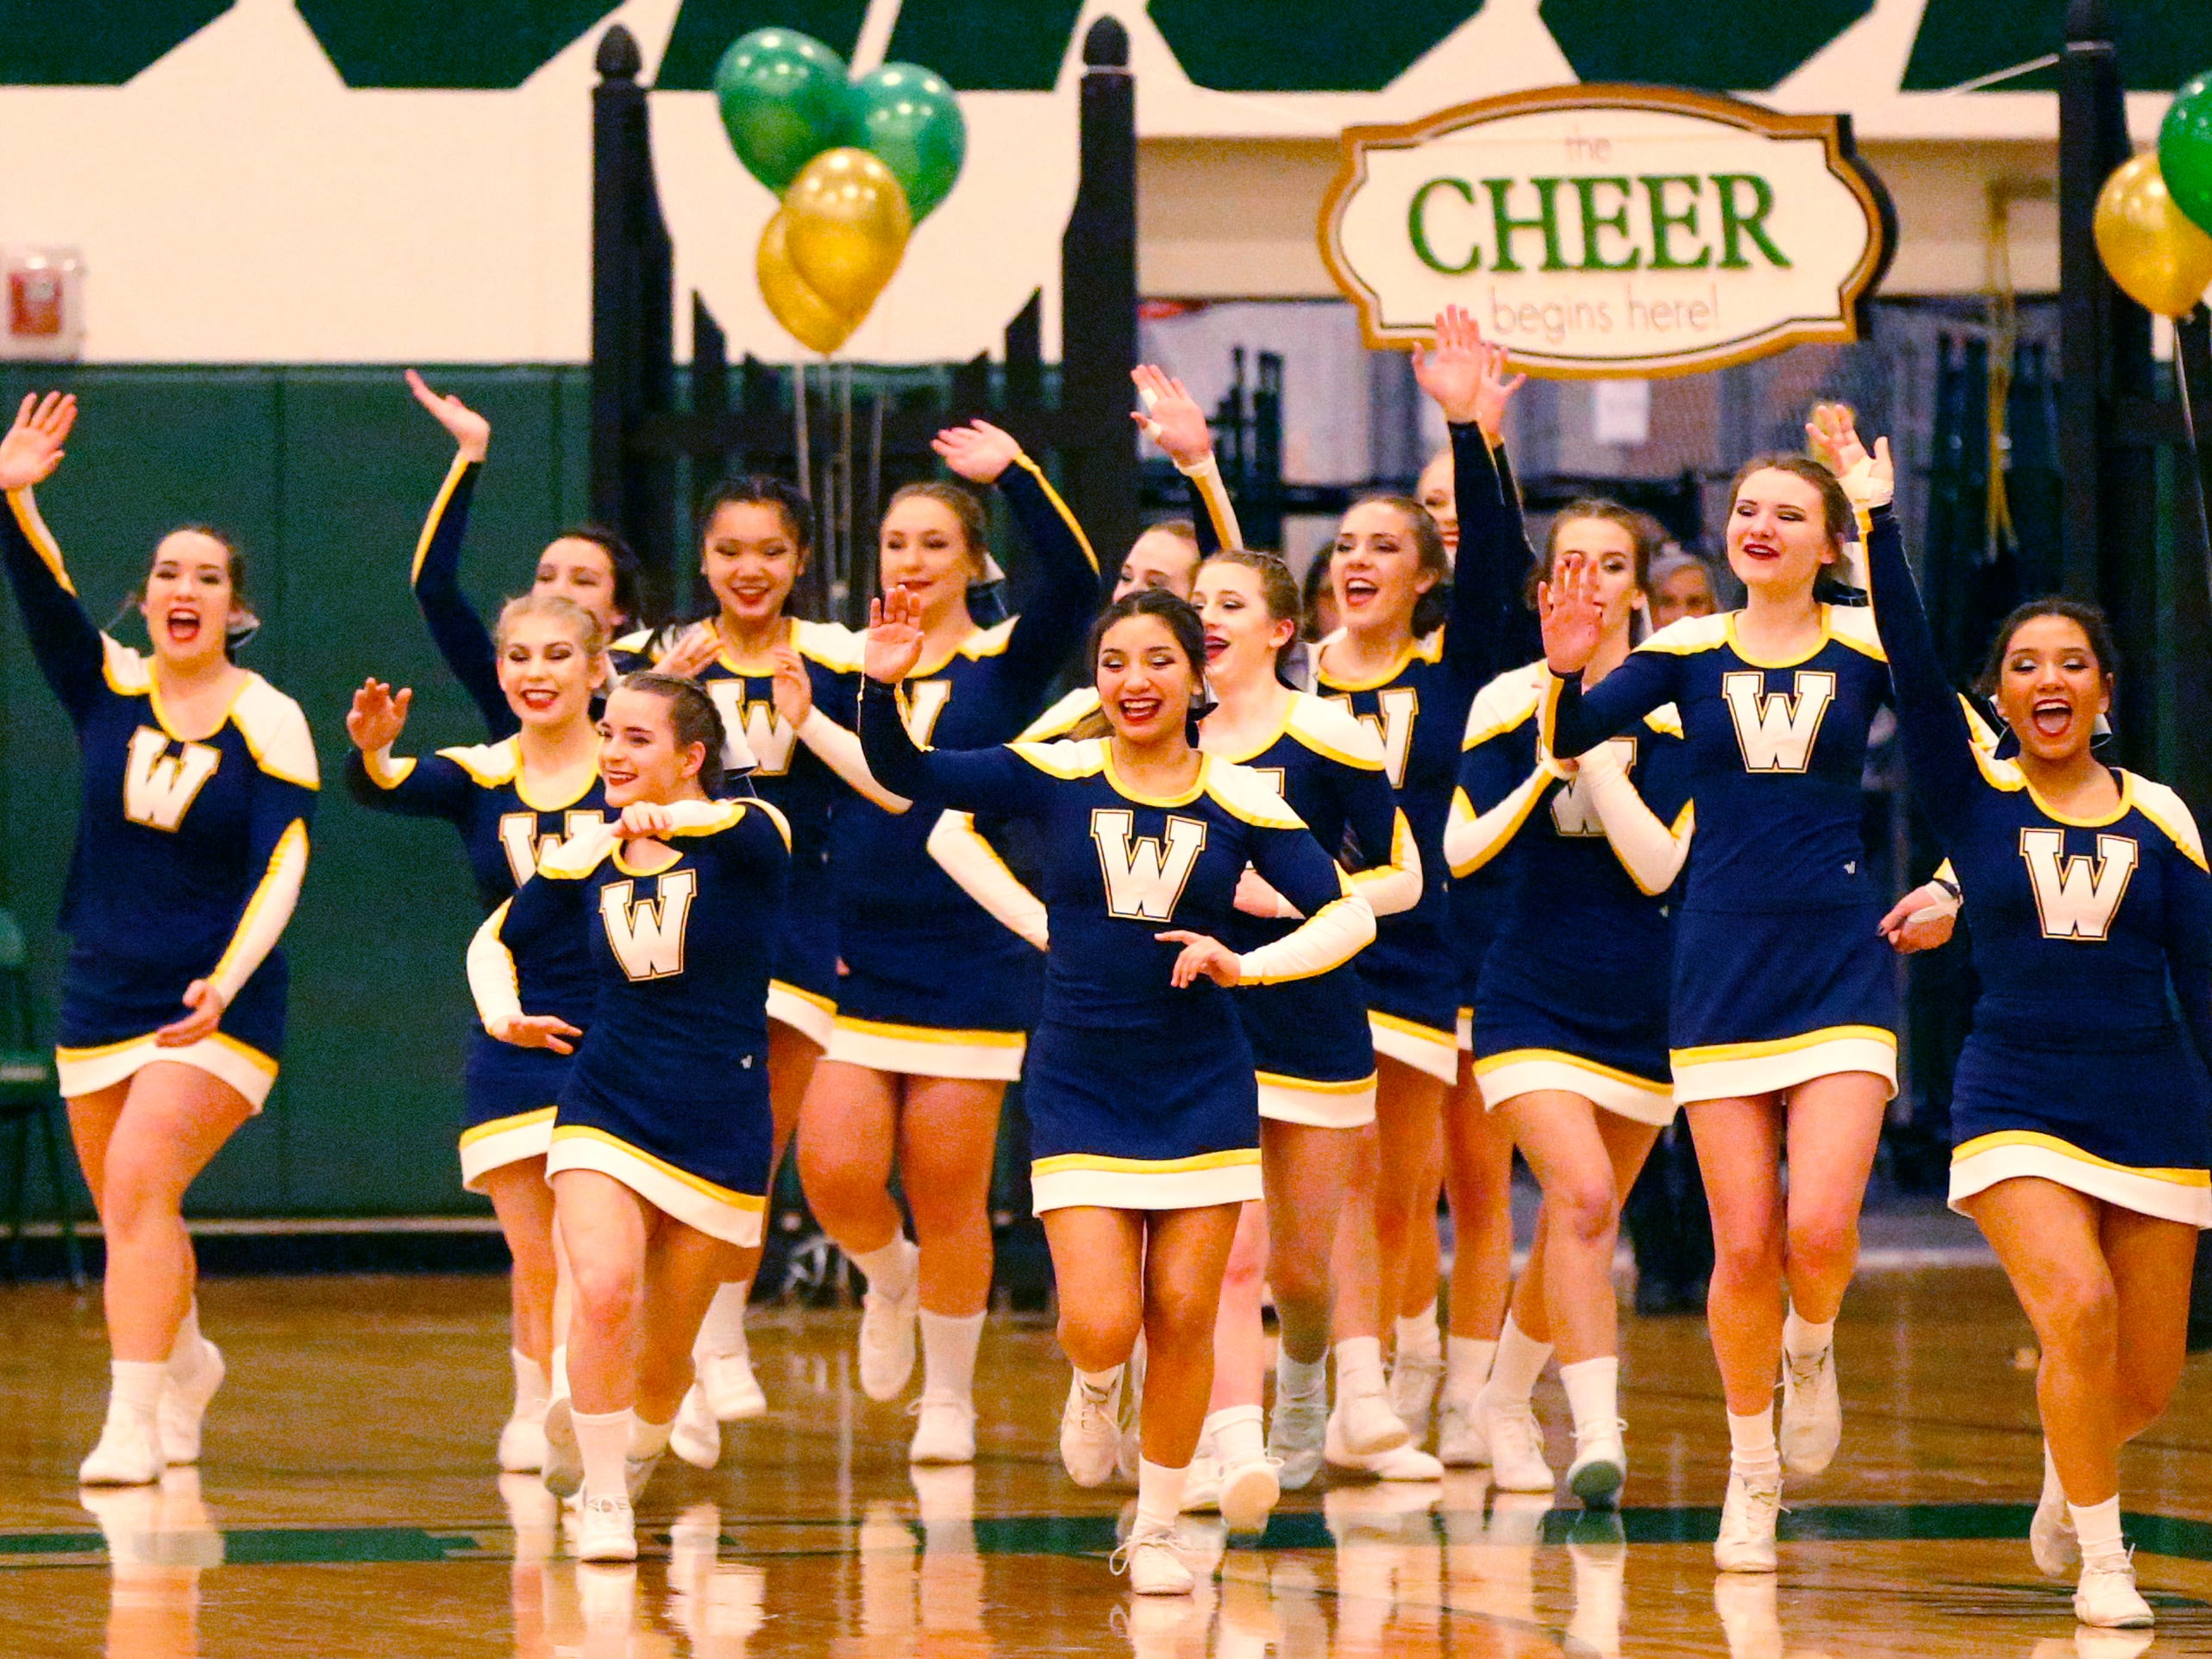 The Whitnall High School team takes the floor to compete in the varsity non-tumble division during the Greenfield Xtreme Cheer competition at Greenfield High School on Jan. 12 that drew 56 teams competing in 13 divisions.